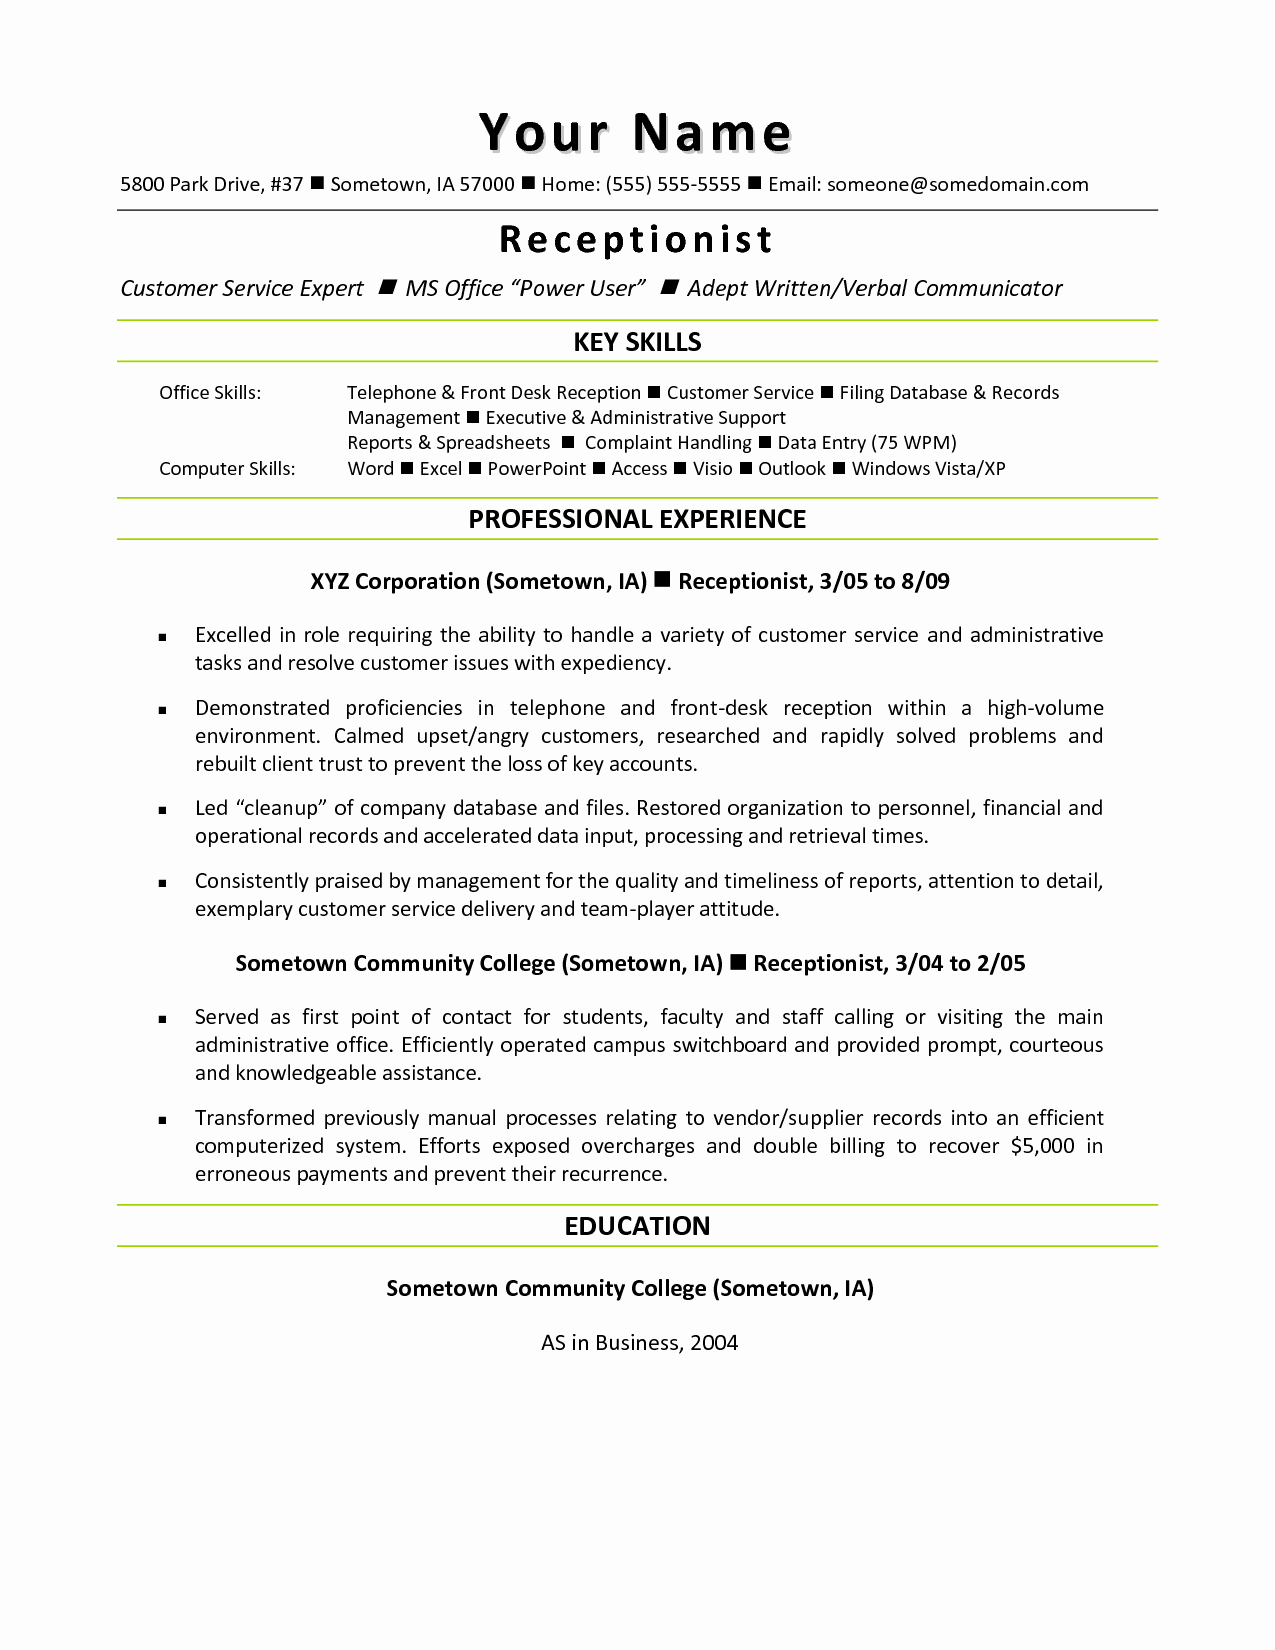 Resume Cover Letter Template for Medical assistant - Medical assistant Sample Resume Fresh Sample Cover Letter for